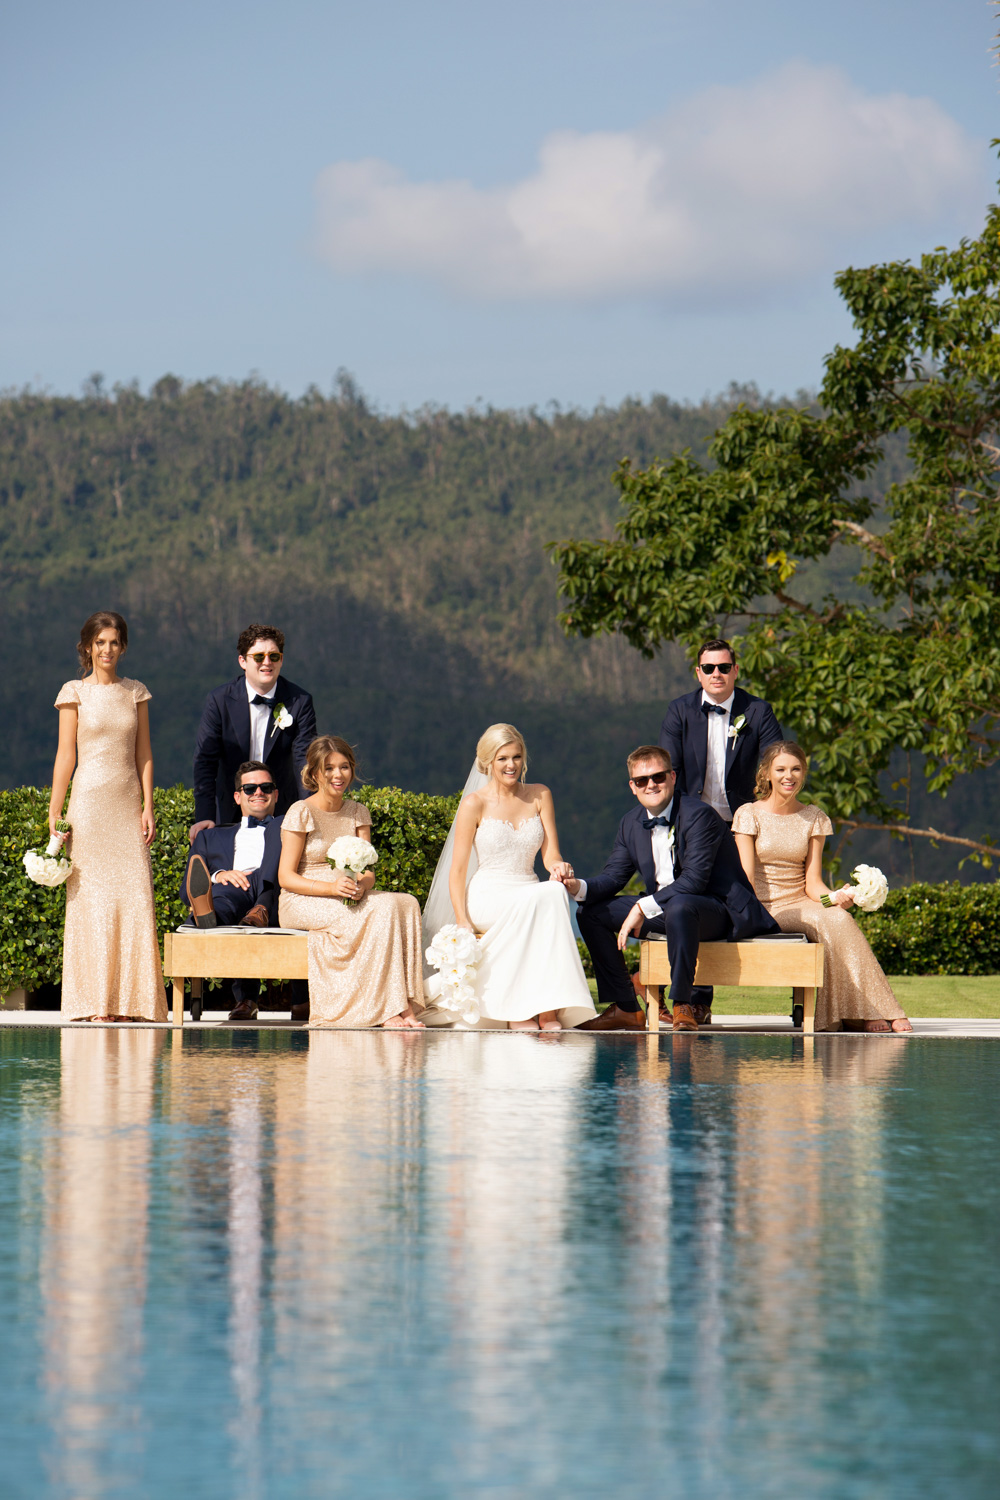 wedding-0144-qualia-pool-bridalparty-reflections-sunglasses-australia.jpg